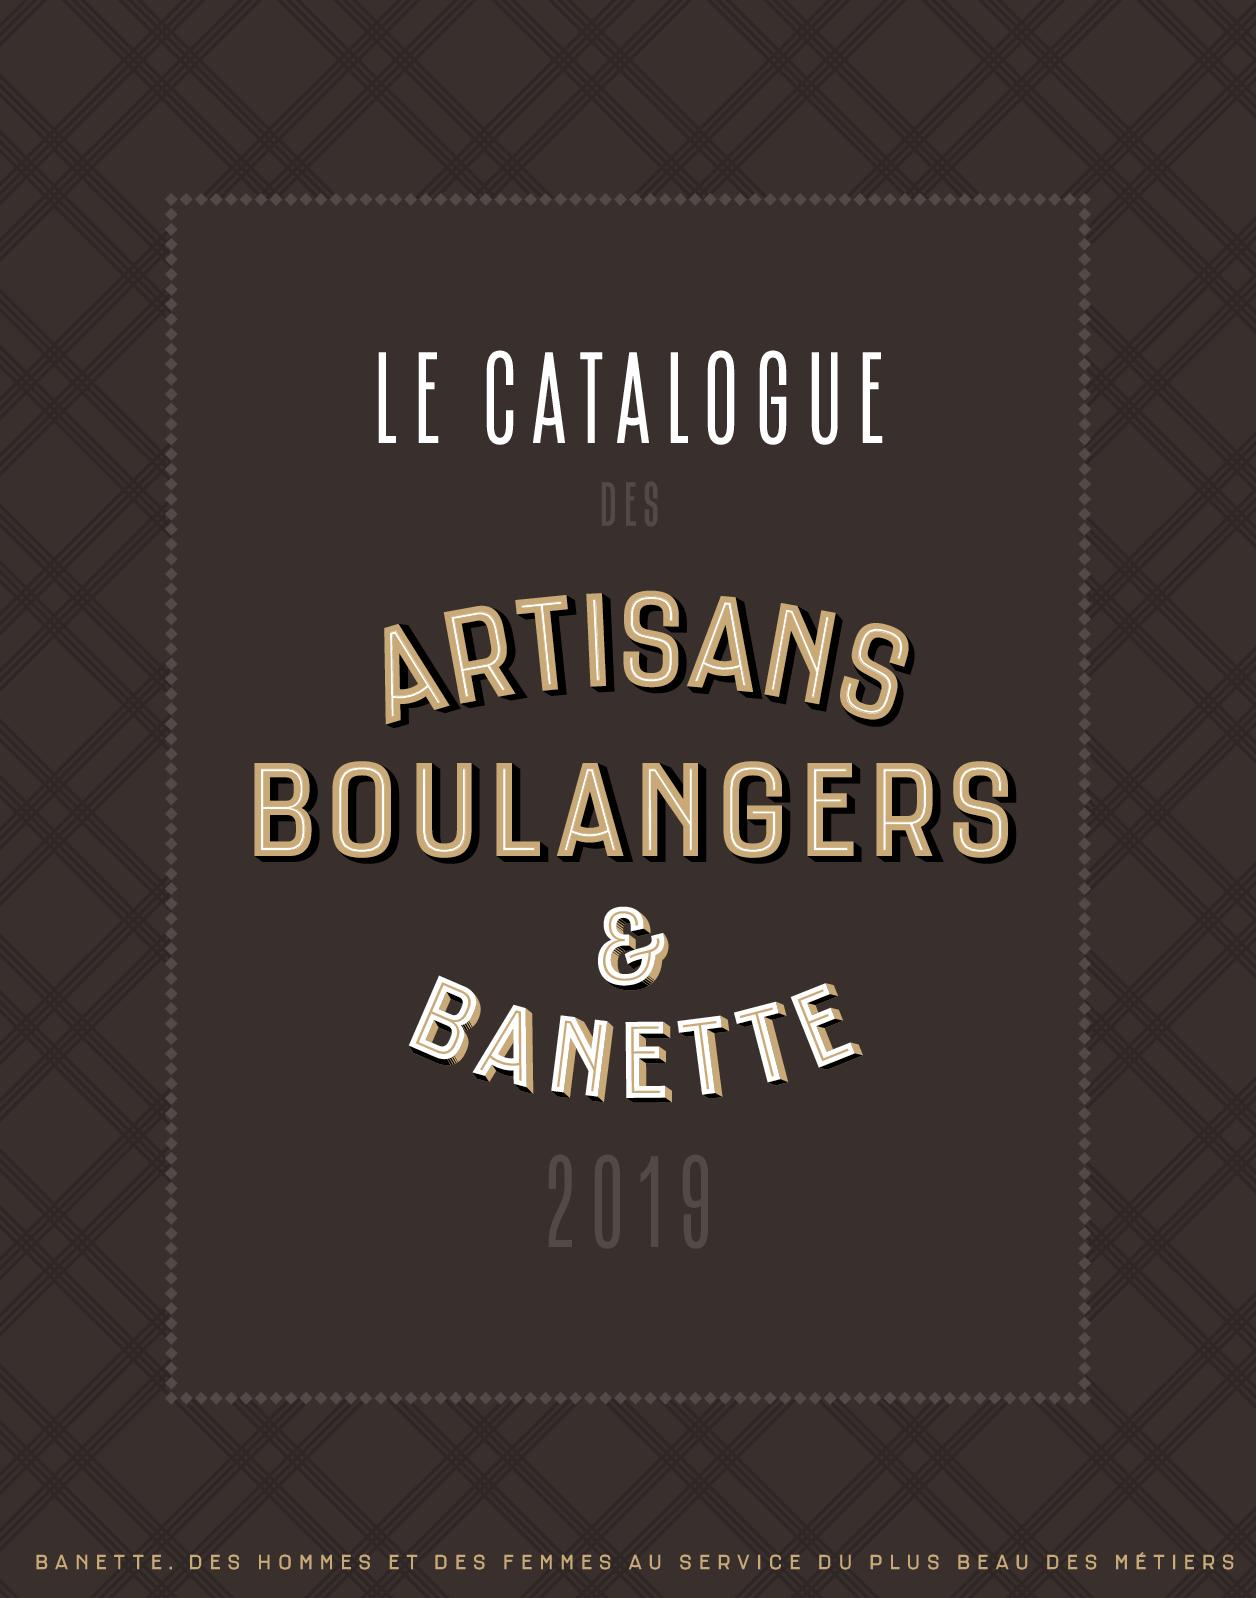 Catalogue Banette 2019 - Digital